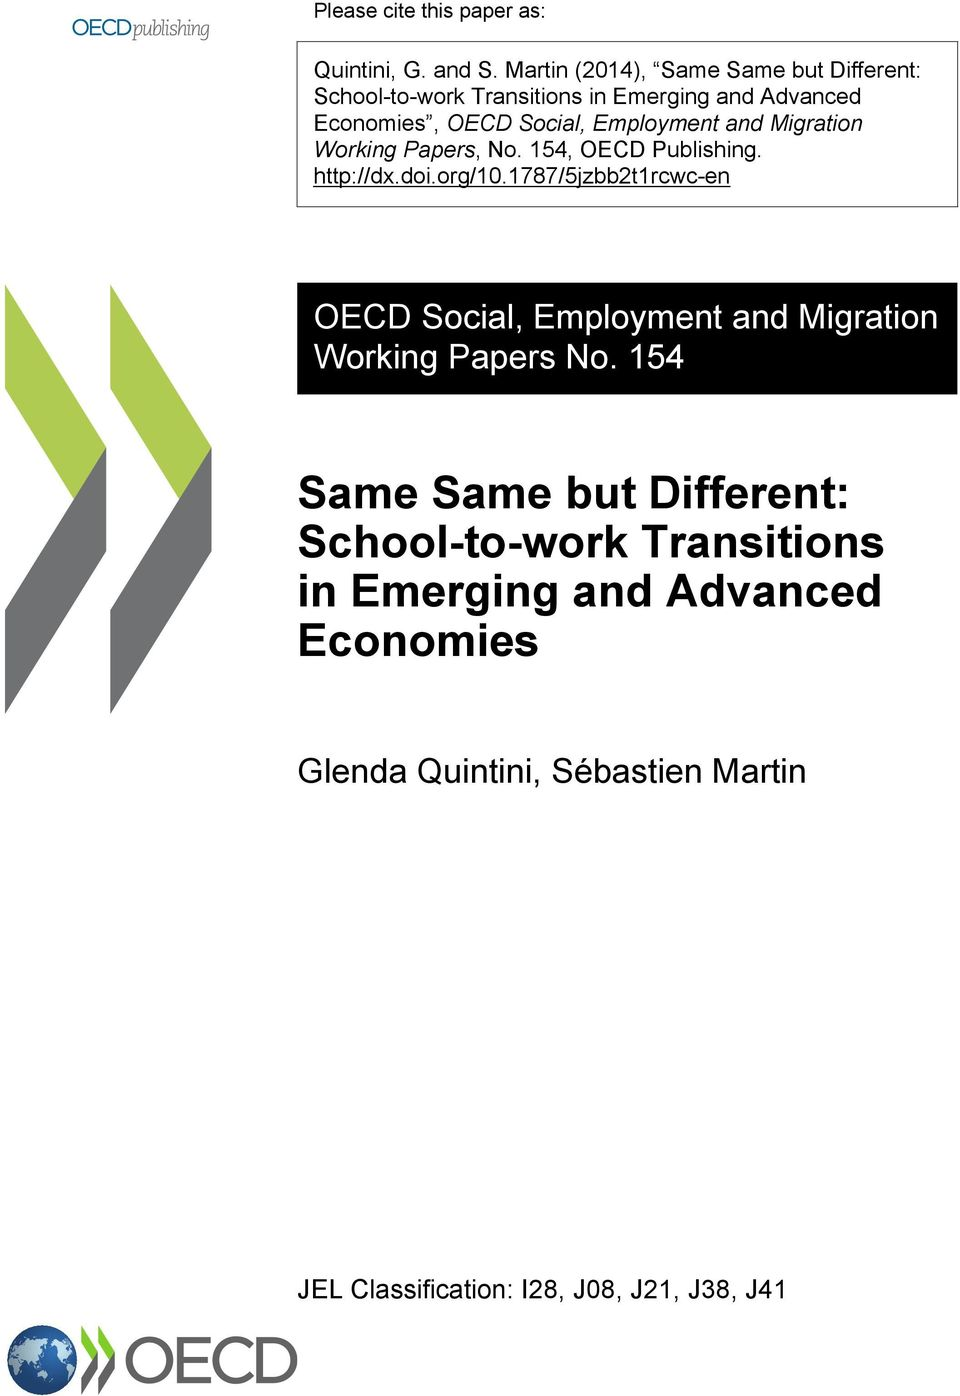 Employment and Migration Working Papers, No. 154, OECD Publishing. http://dx.doi.org/10.